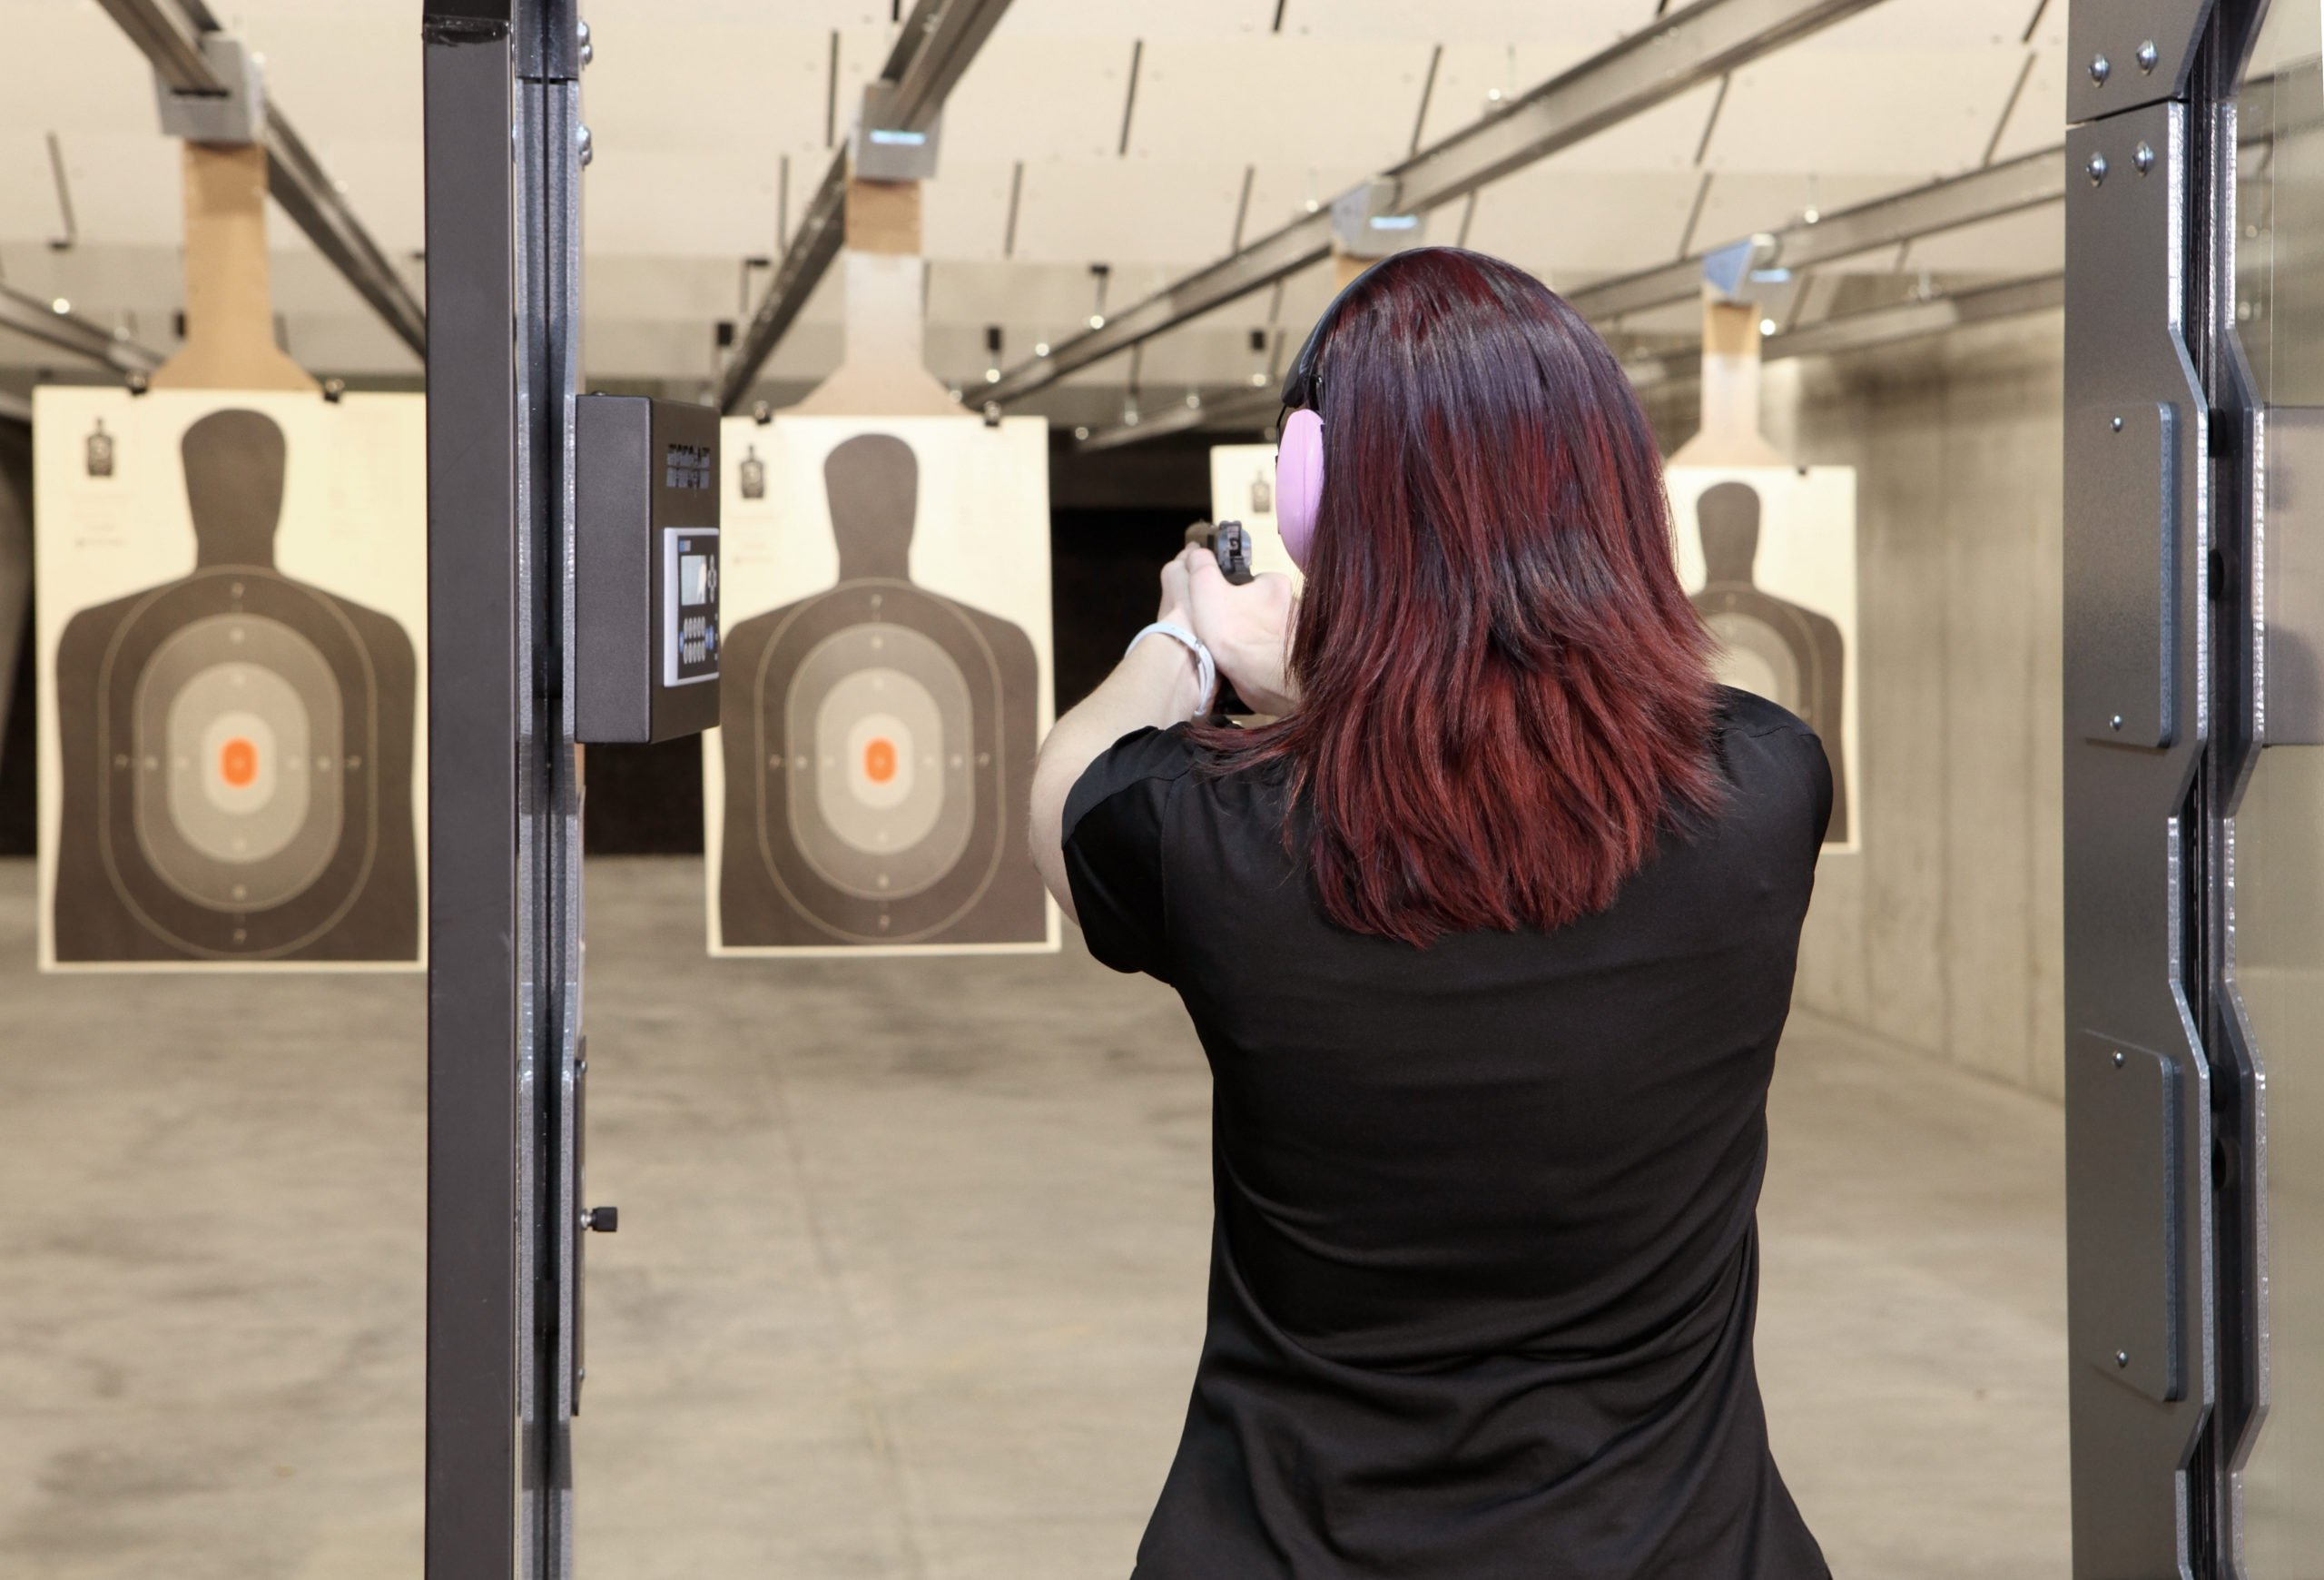 6 Best Guns for Women Protecting Their Family scaled